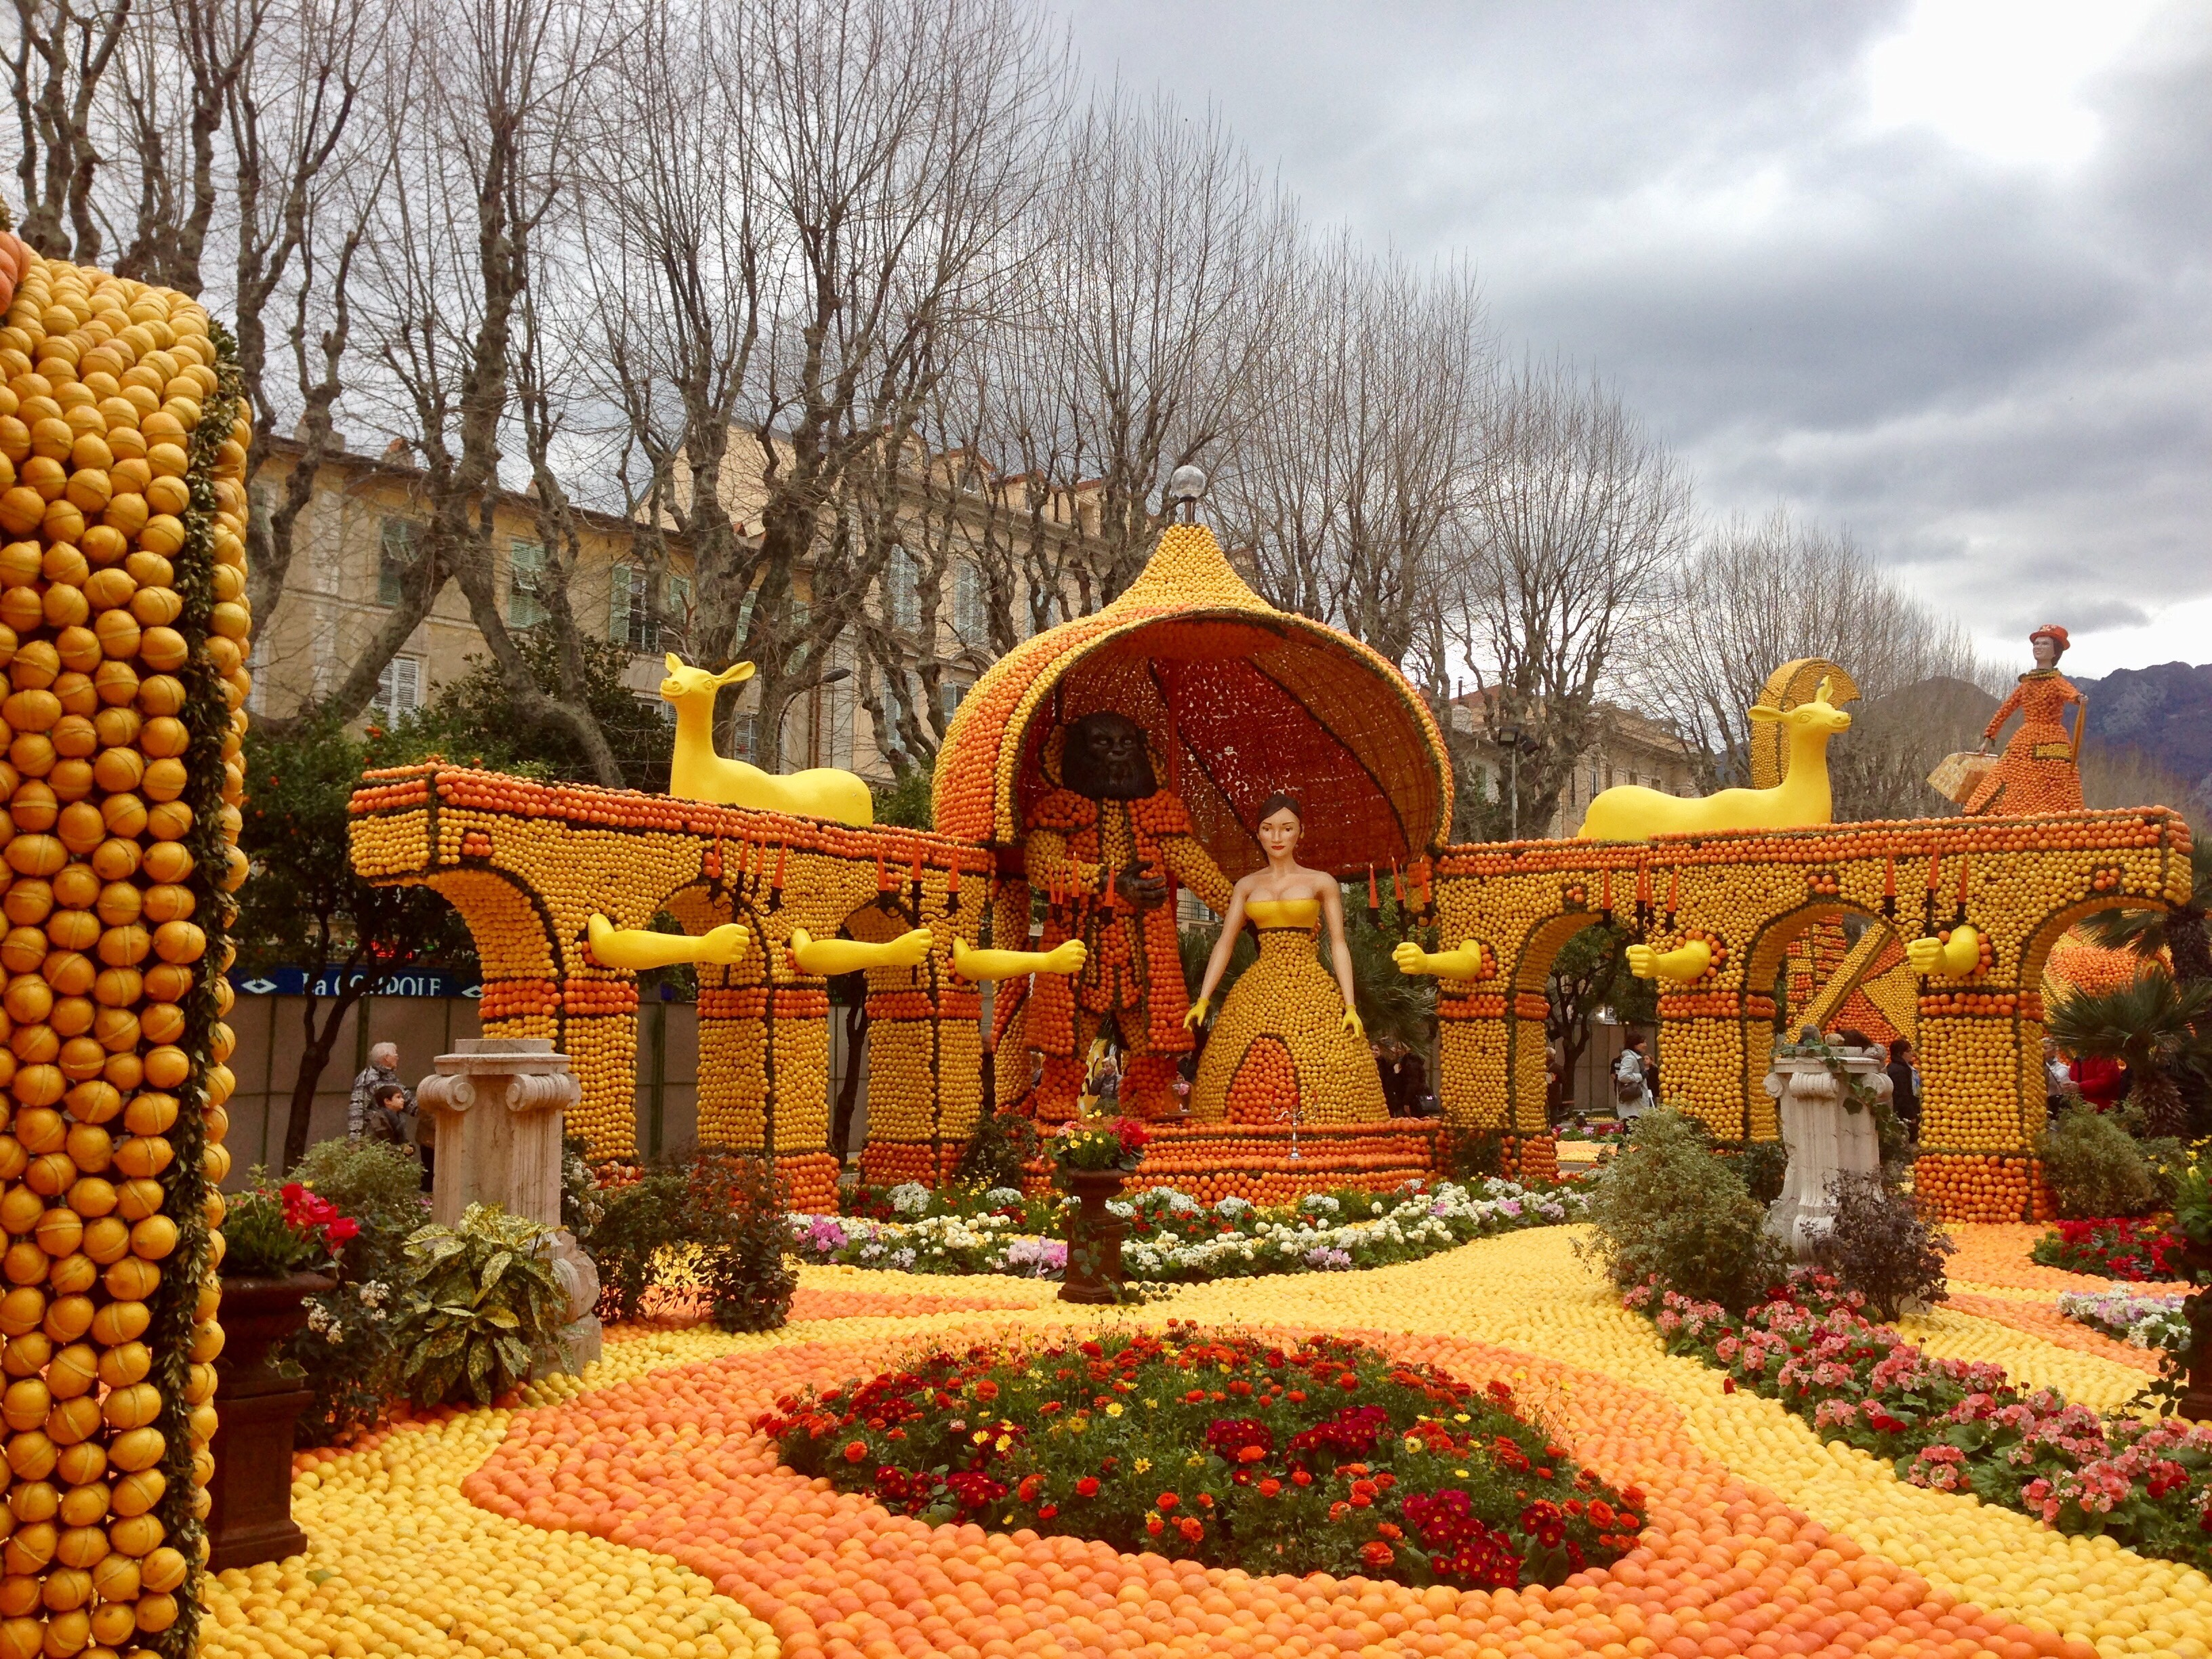 Menton Lemon Festival - Credit: Summer Hotel group